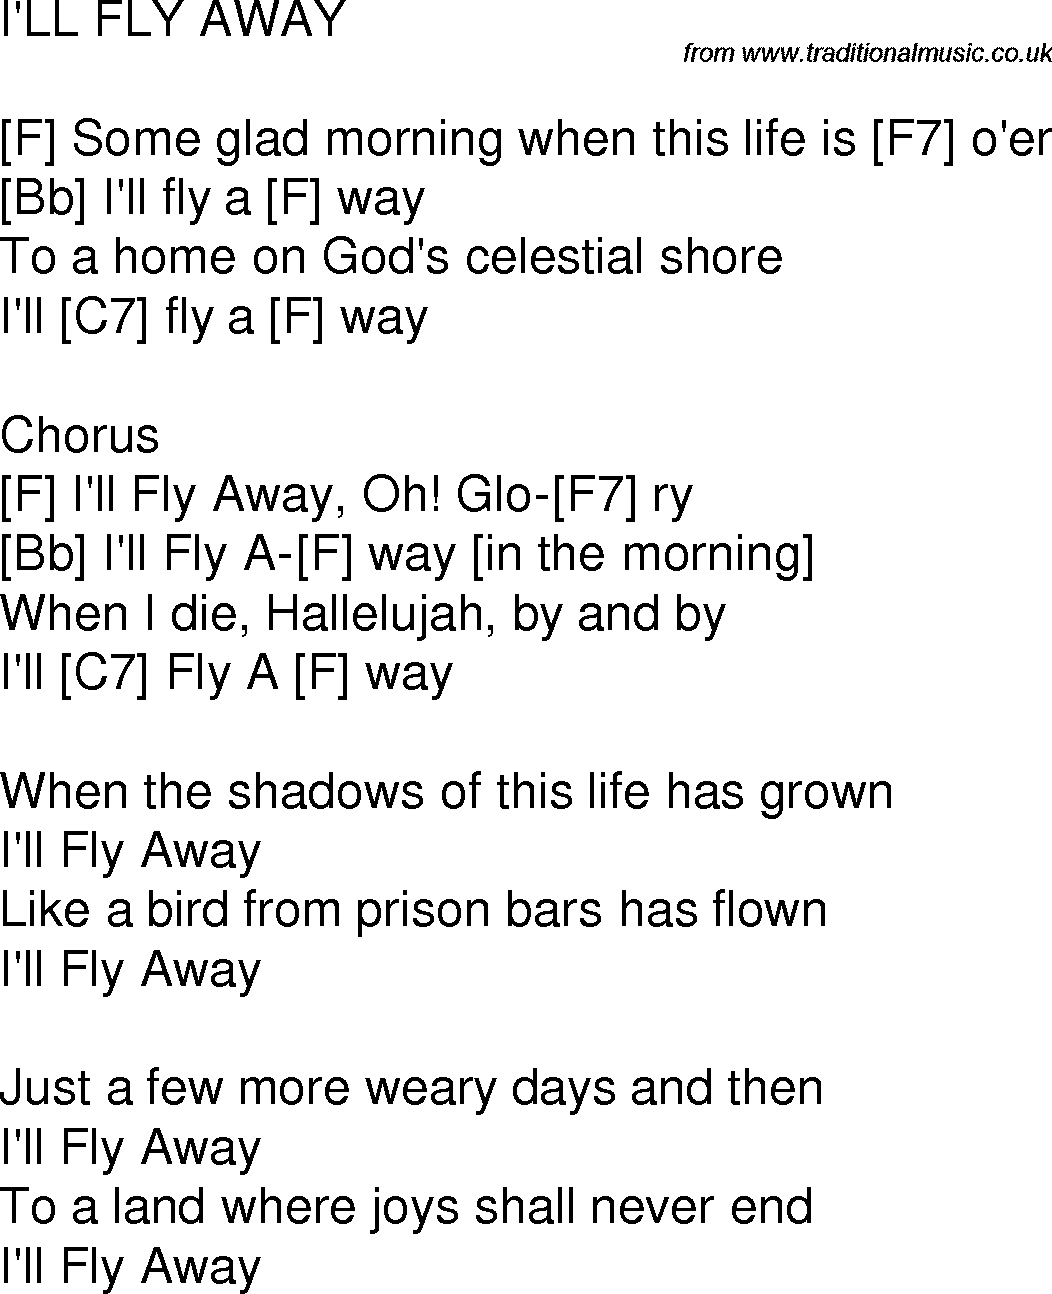 Ill fly away old hymns download this song as pdf file for ill fly away old hymns download this song as pdf file hexwebz Image collections